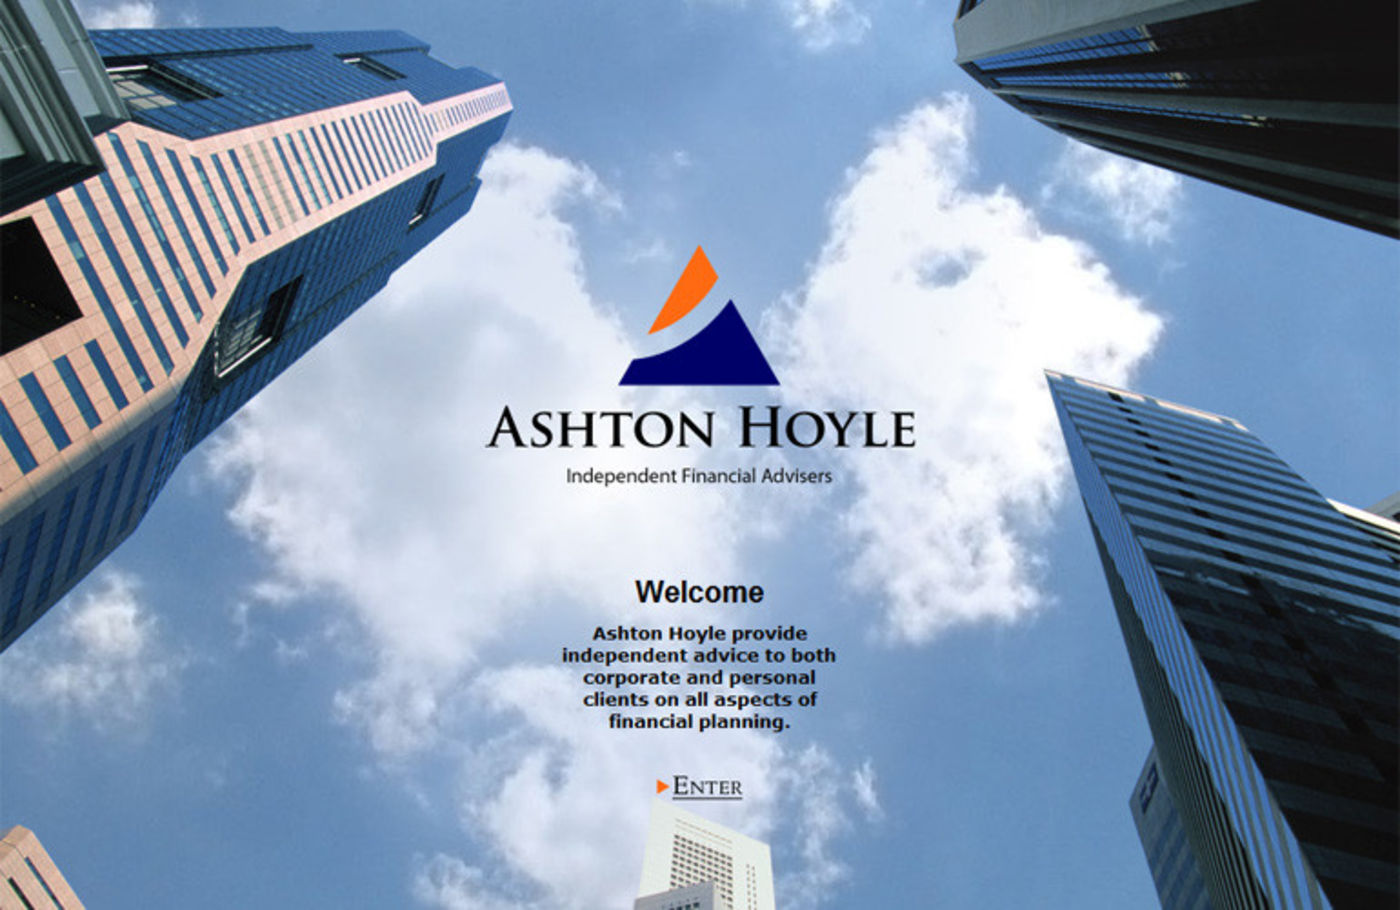 Ashton Hoyle Independent Financial Advisers Welcome - Ashton Hoyle